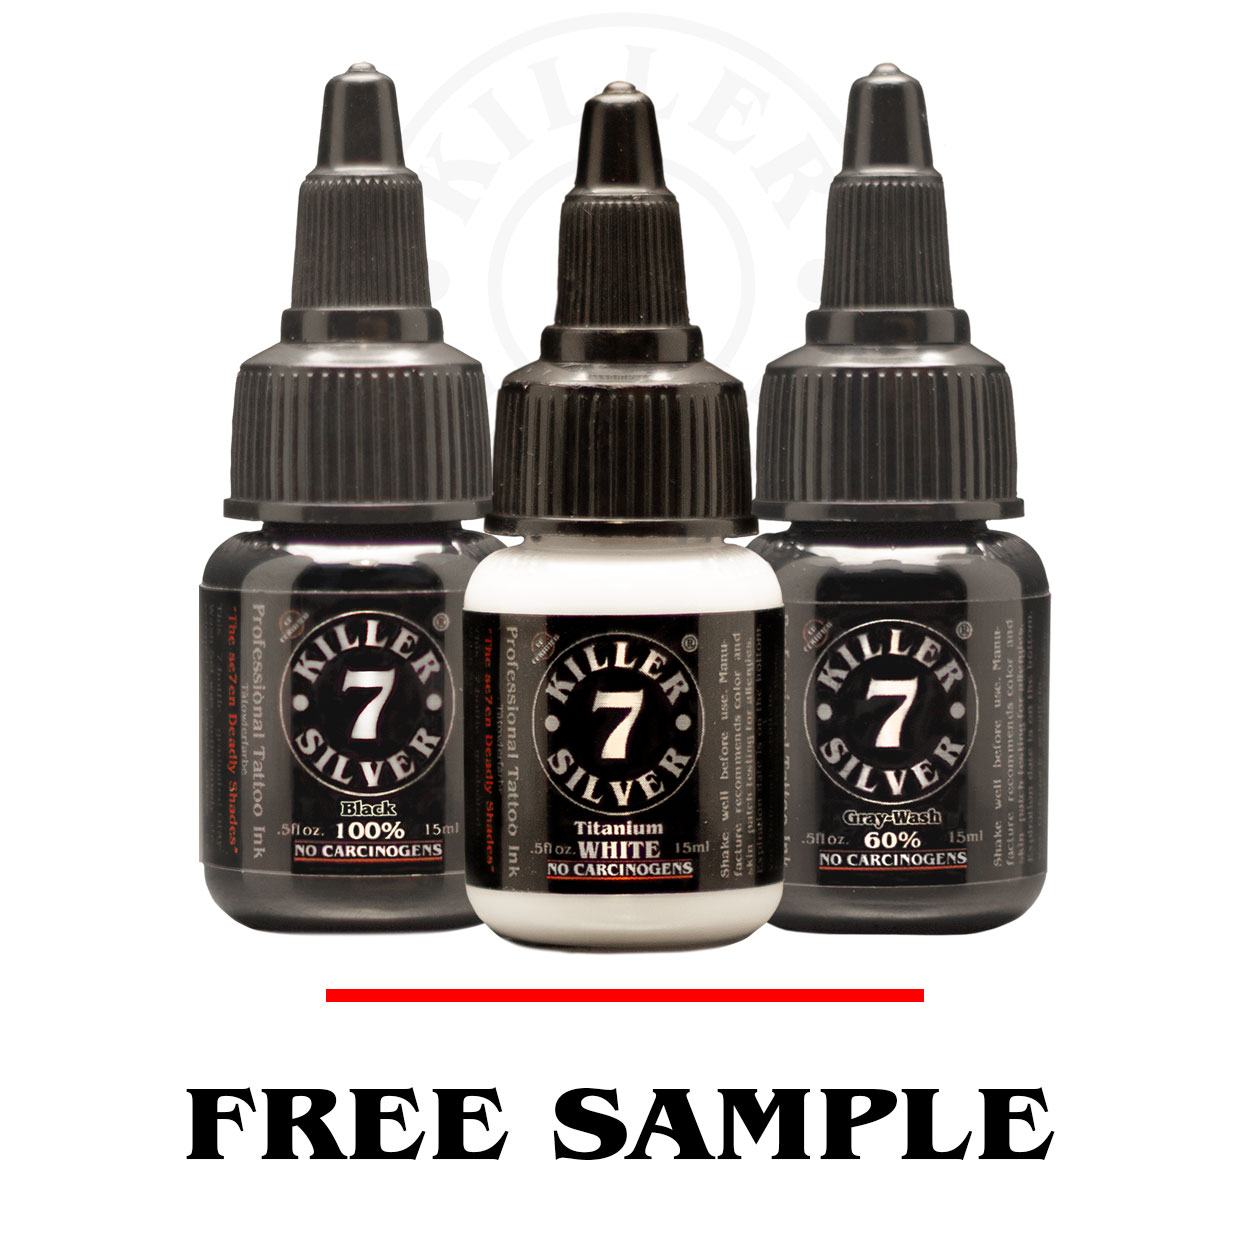 Free Sample - Gray-Wash Tattoo Ink - Killer Silver